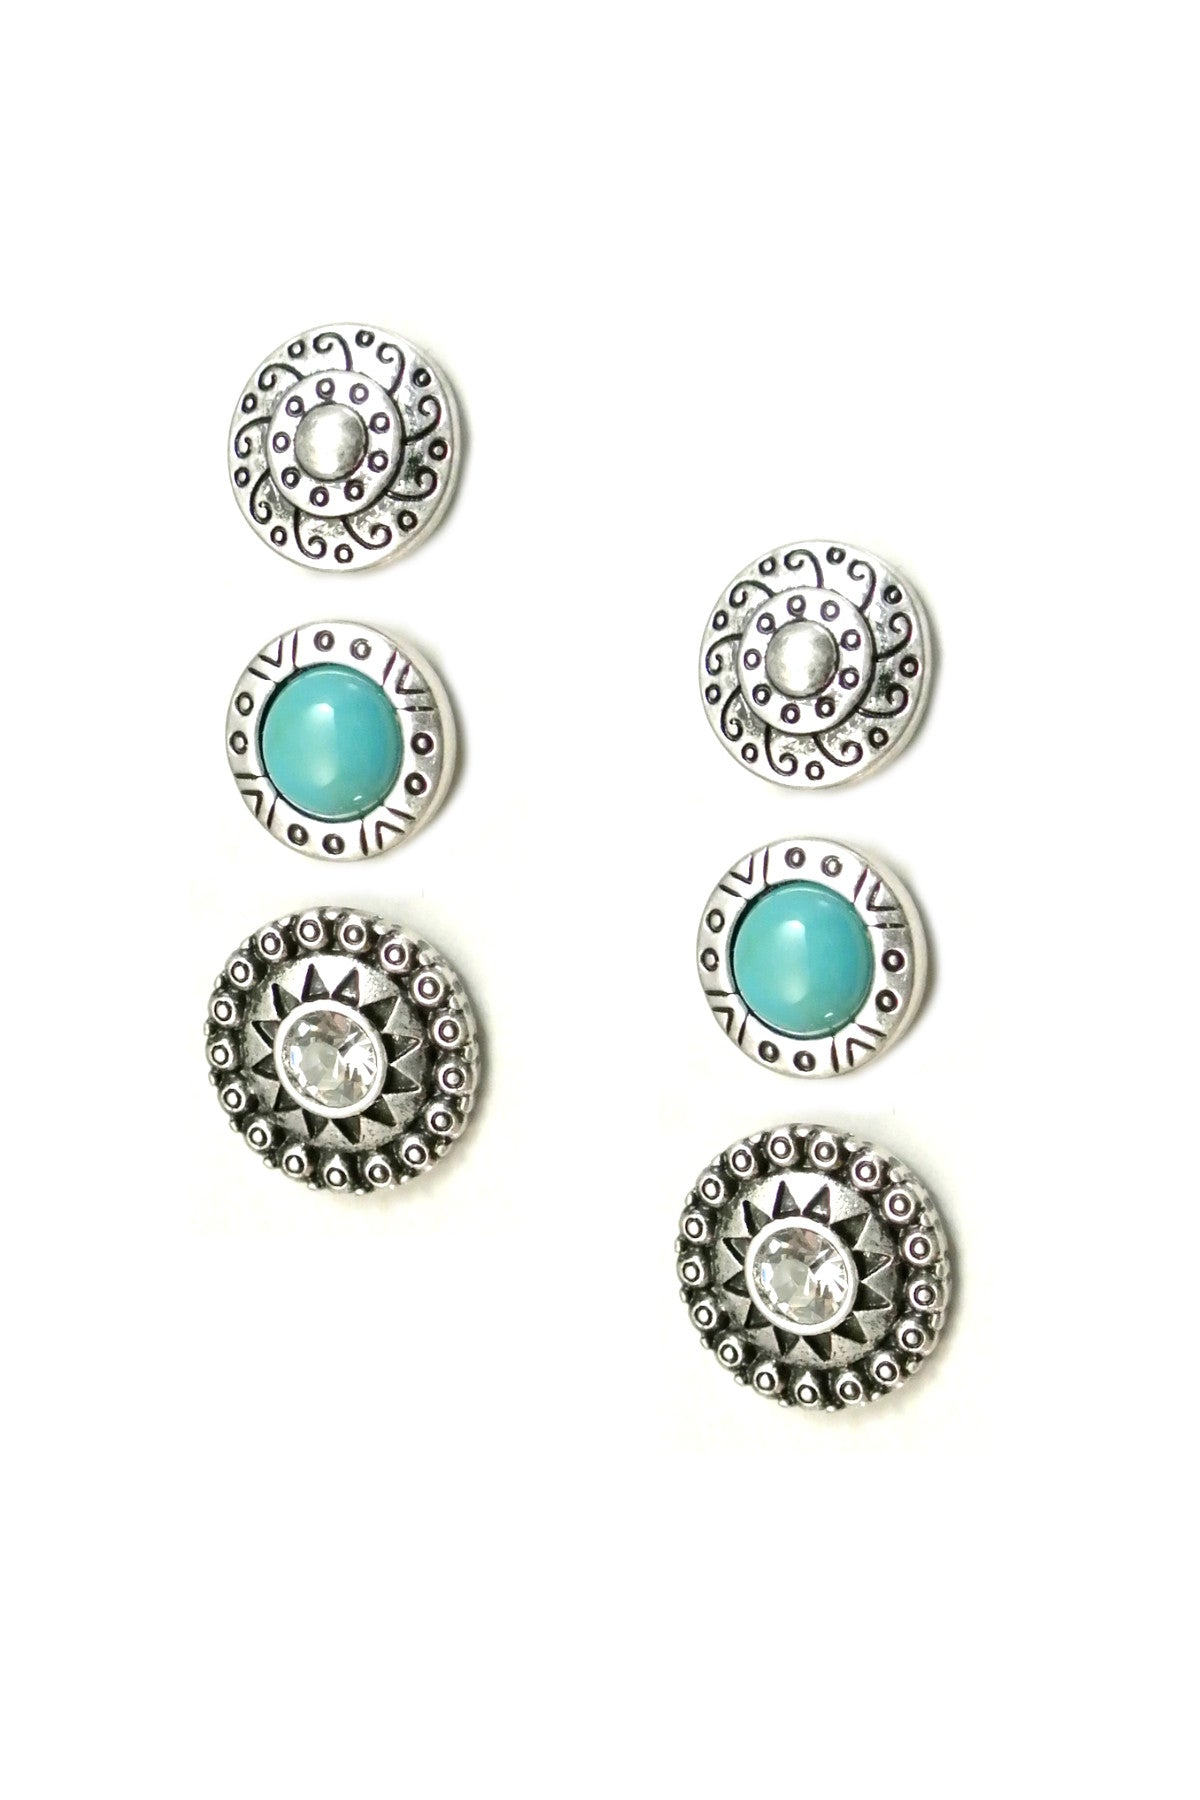 Boho Chic Earring Set